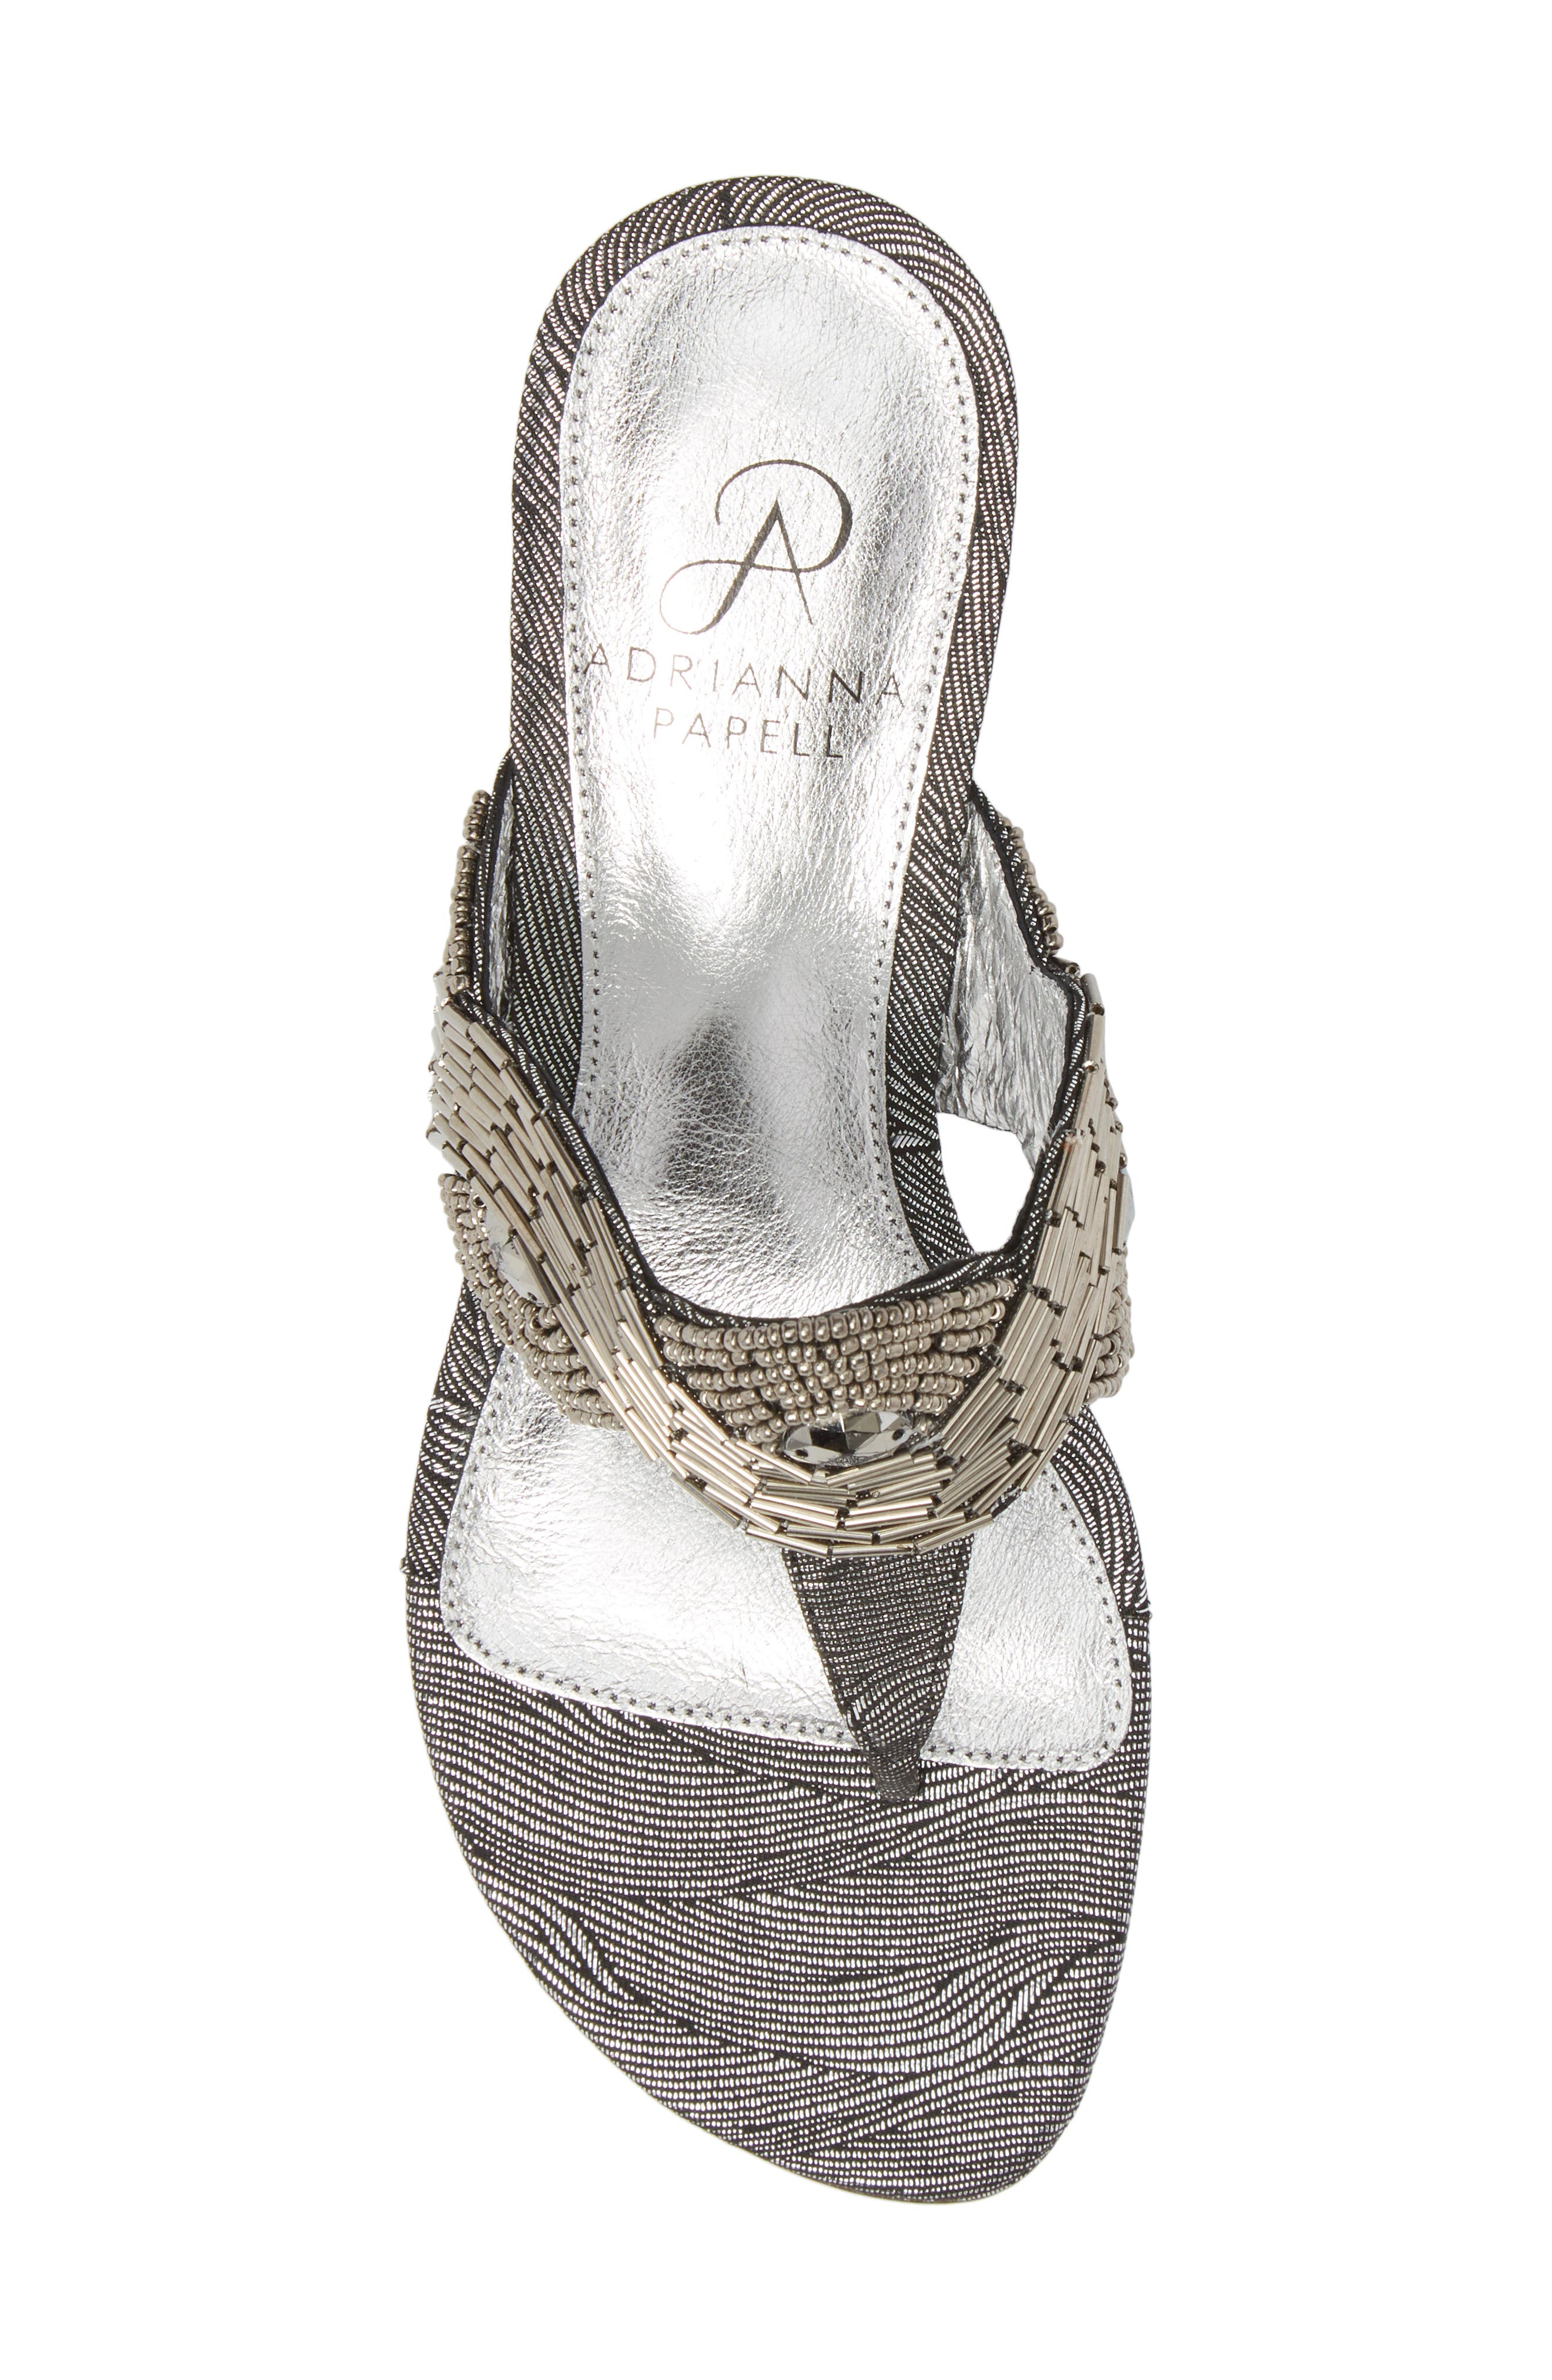 ADRIANNA PAPELL,                             Coco Beaded Wedge Sandal,                             Alternate thumbnail 5, color,                             049